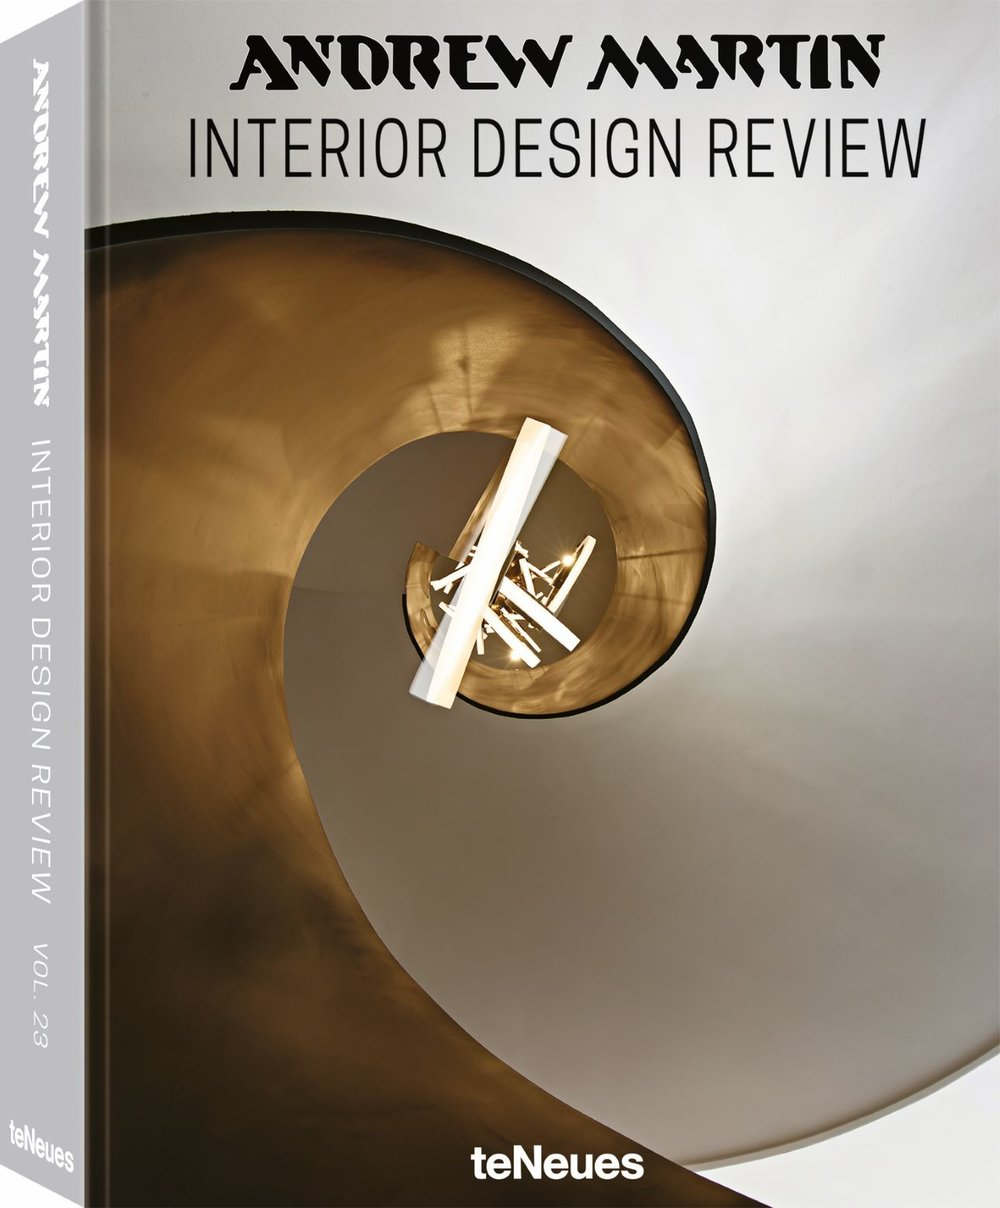 Andrew Martin, Interior Design Review, Volume 23